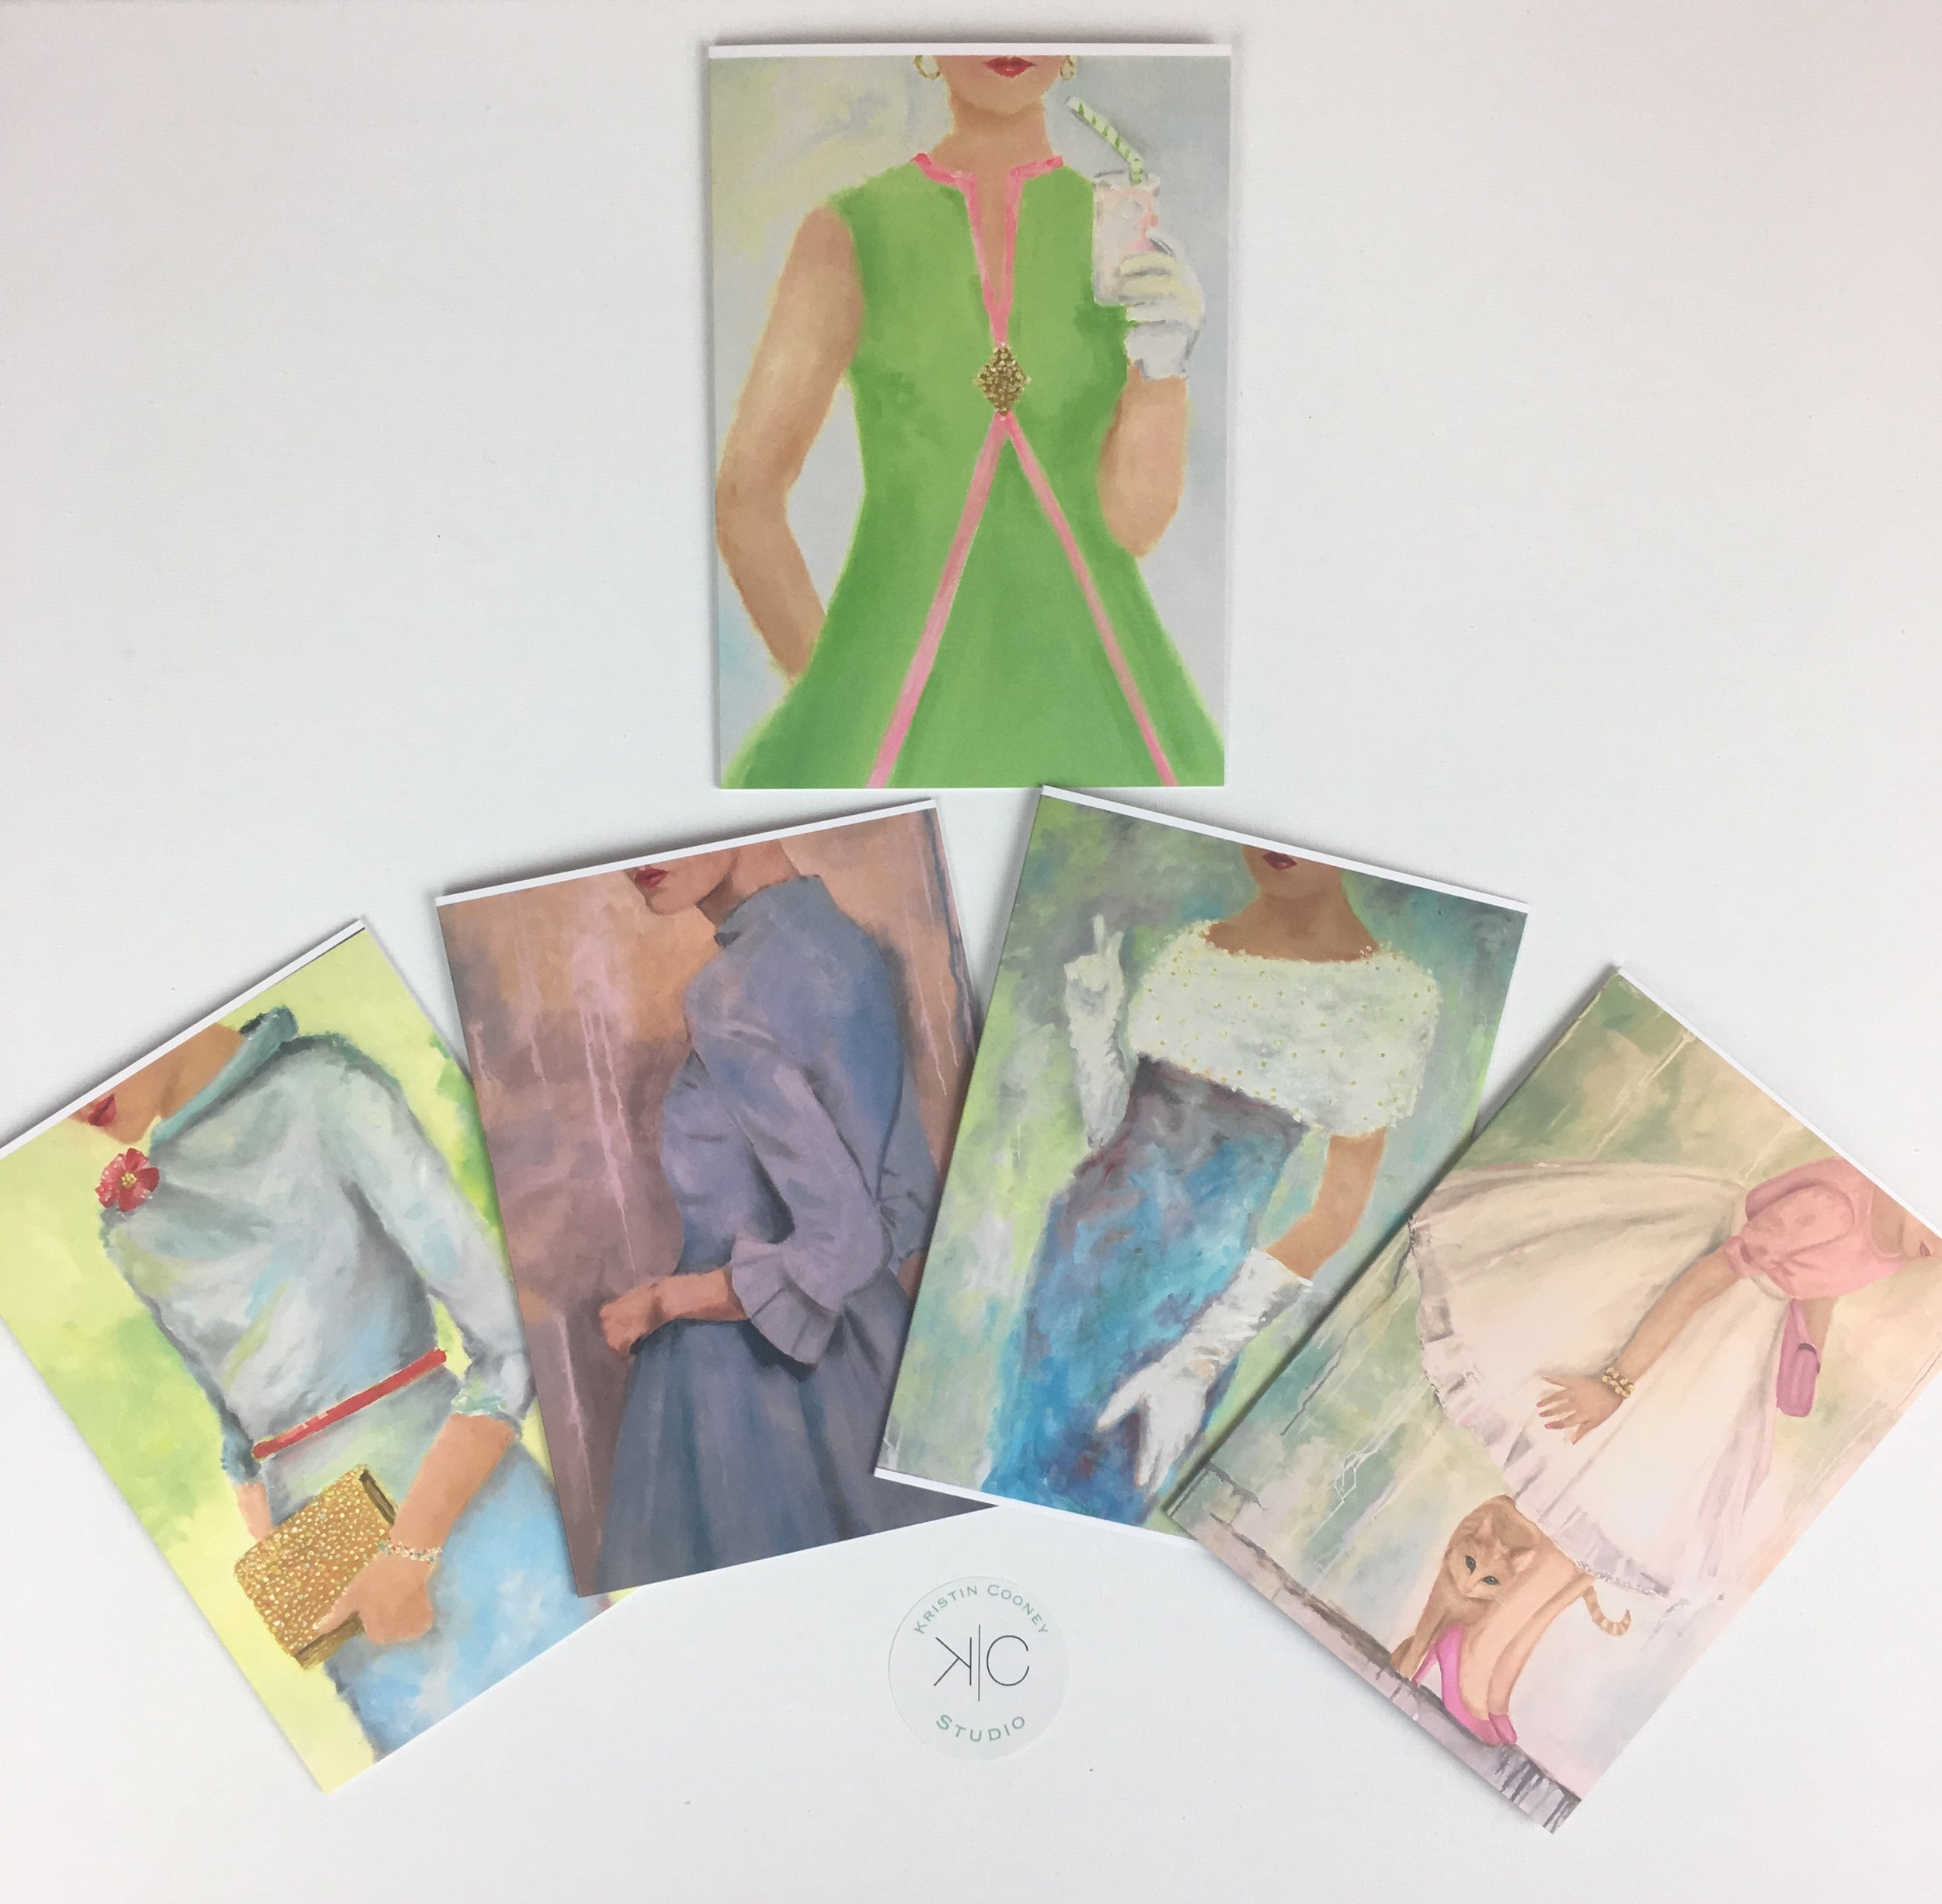 All my favorite Glamorous Ladies are hanging out in this package of 6 cards!